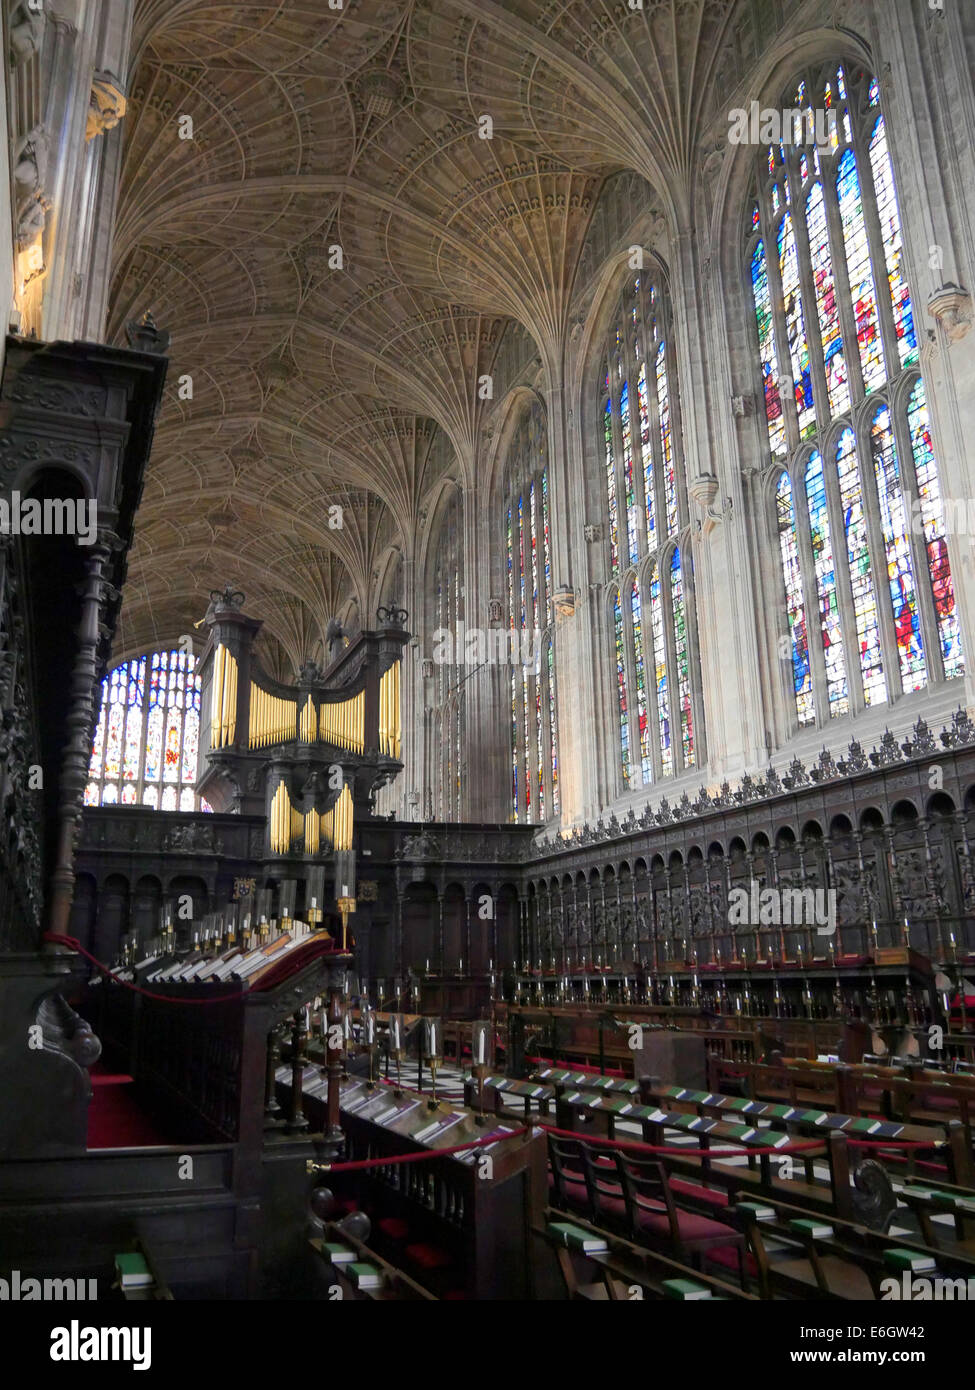 interior of kings college chapel cambridge england, showing the chapel organ - Stock Image